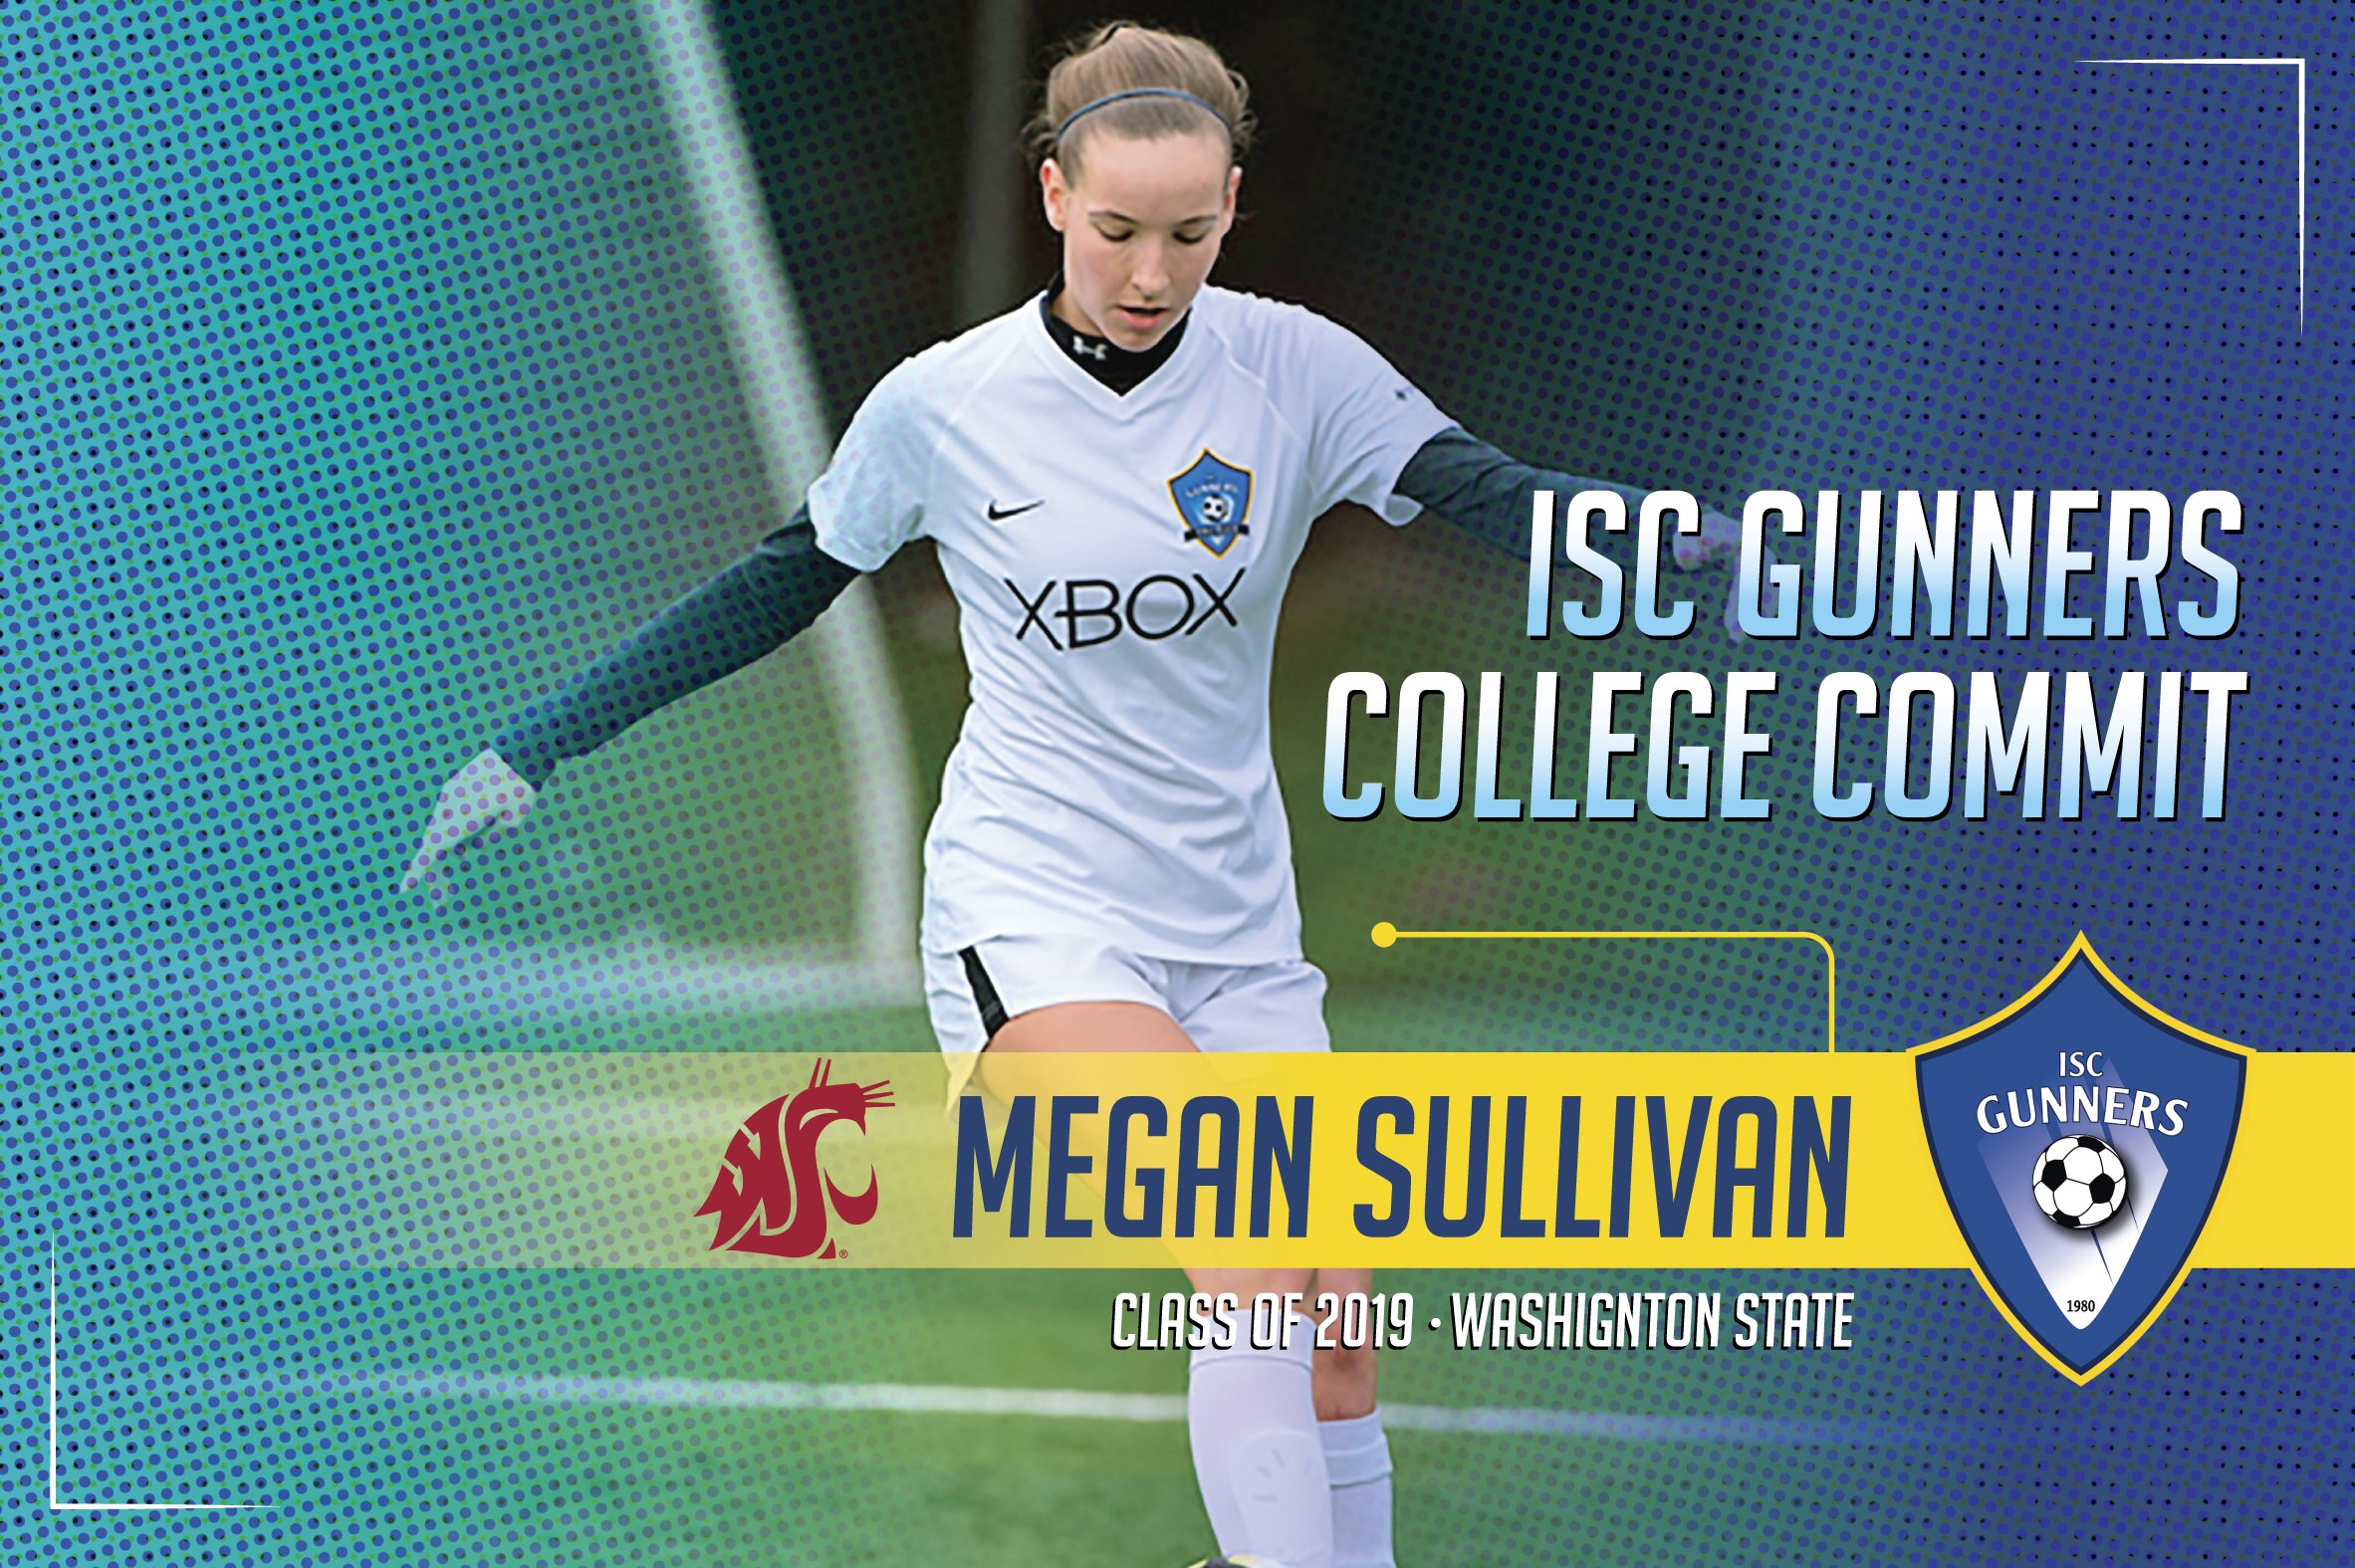 ISC Gunners College Commitments #4 (Only 1 x Graphic/Flyer)